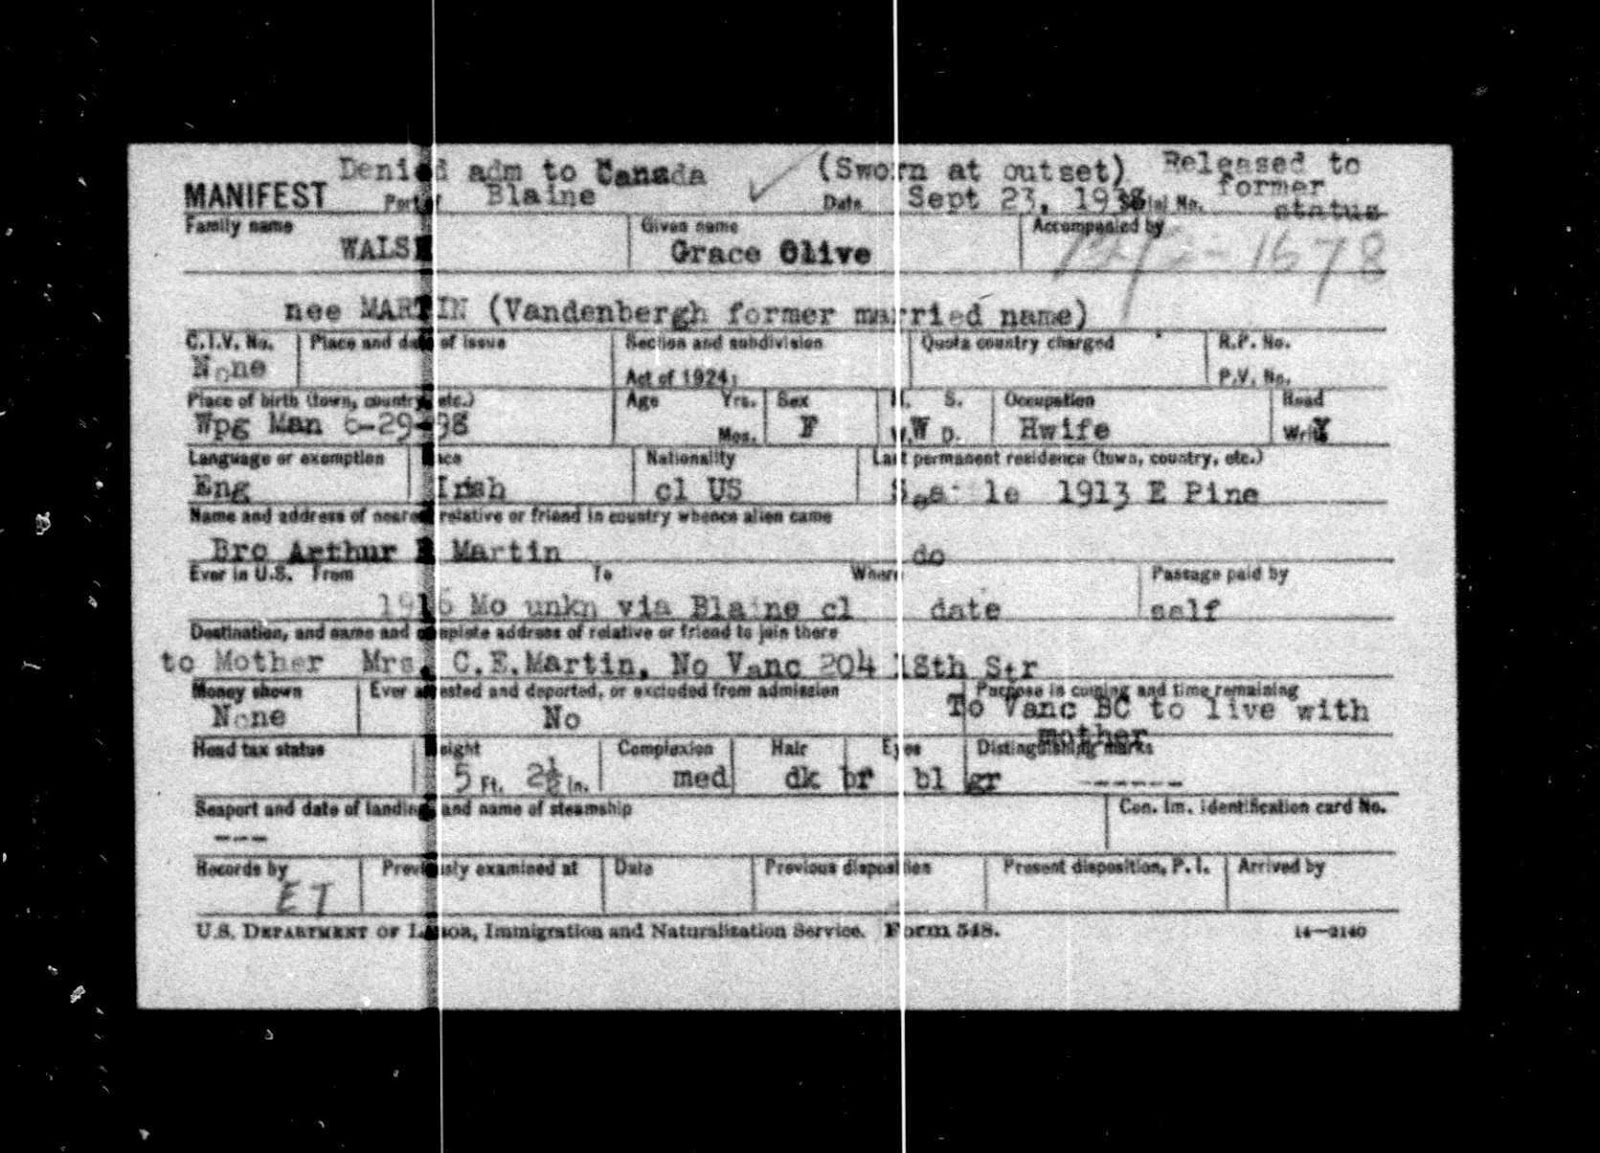 "Ancestry.com, ""Border Crossings: From Canada to U.S., 1895-1956,"" database on-line, Ancestry.com (http://www.ancestry.com/ : accessed 3 Feb 2015), entry for Grace Olive Walsh, 23 Sep 1938; Original data: Records of the Immigration and Naturalization Service, RG 85. Washington, D.C.: National Archives and Records Administration."